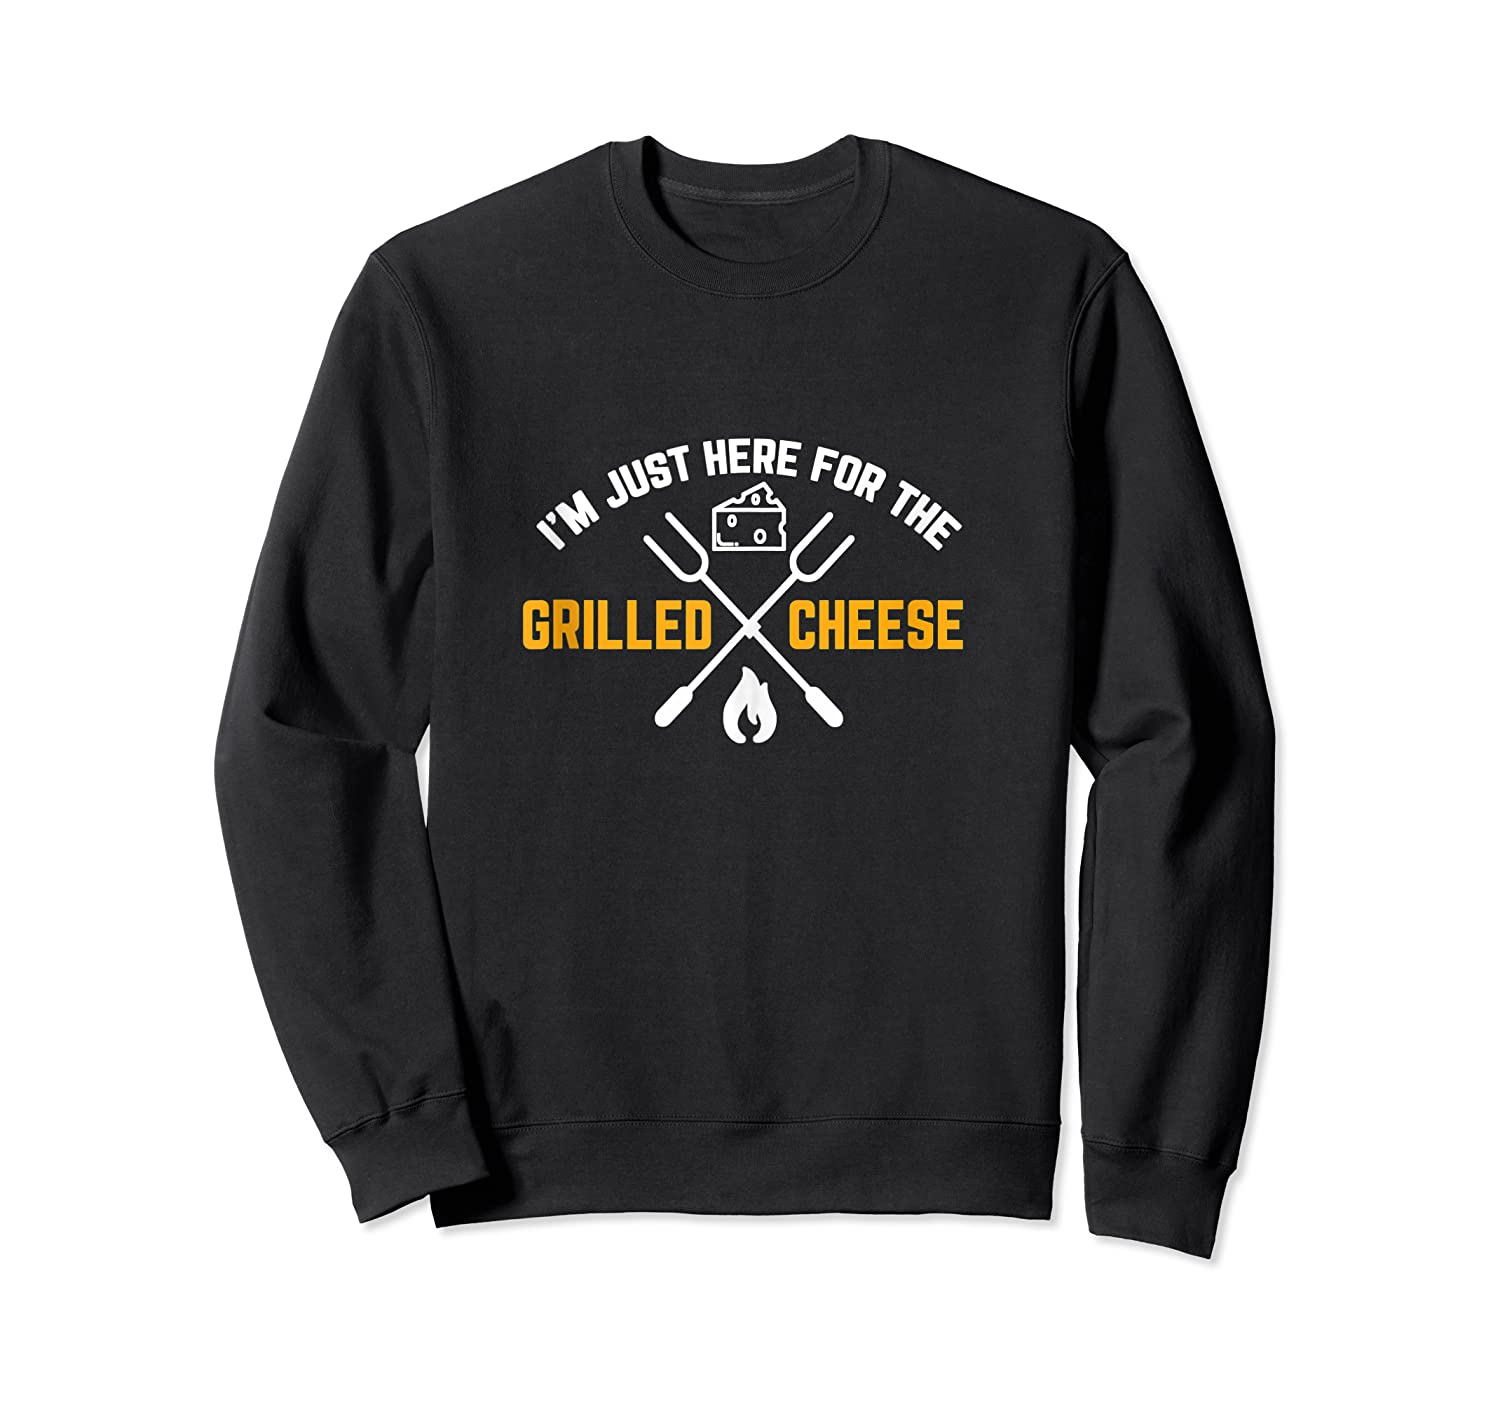 I M Just Here For The Grilled Cheese Funny Gift Tank Top Shirts Crewneck Sweater